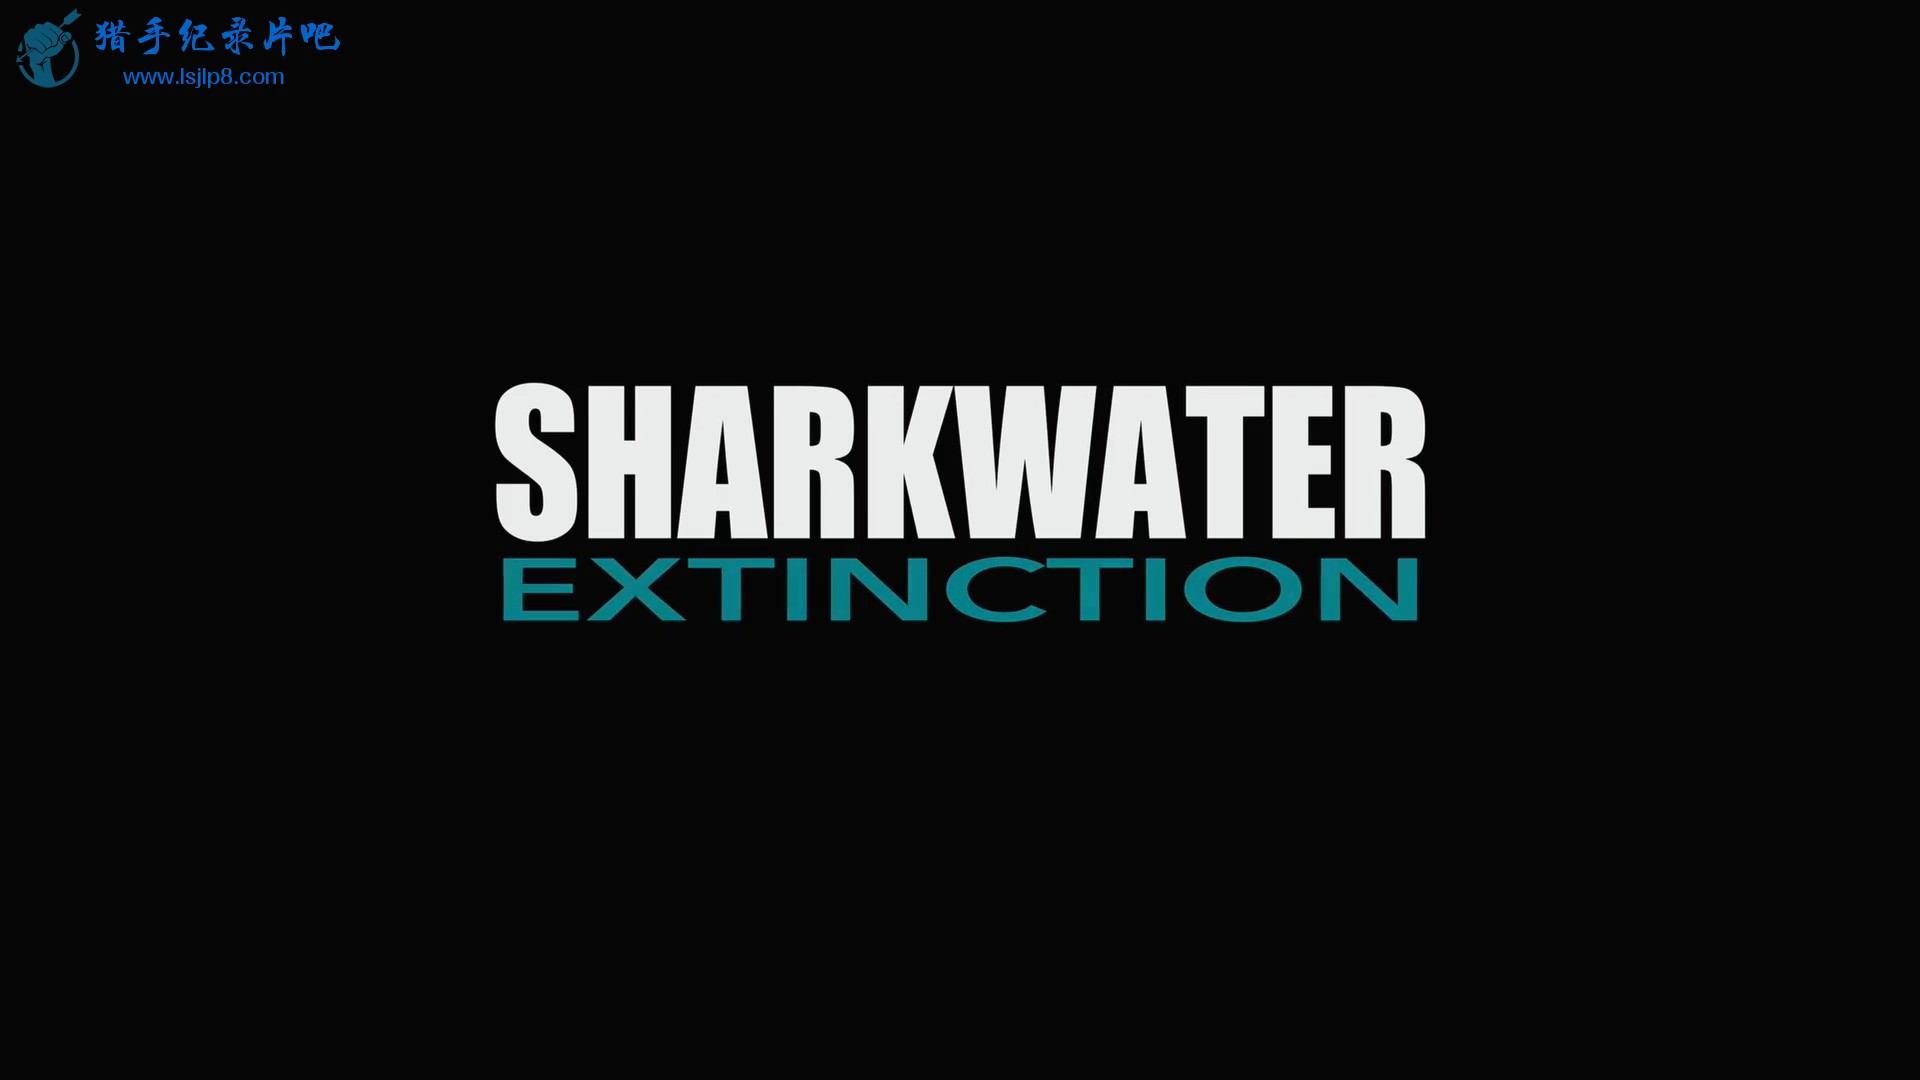 鲨鱼海洋:灭绝.Sharkwater.Extinction.2019.中文字幕.WEBrip.AAC.1080p.x264-VINEnc..jpg